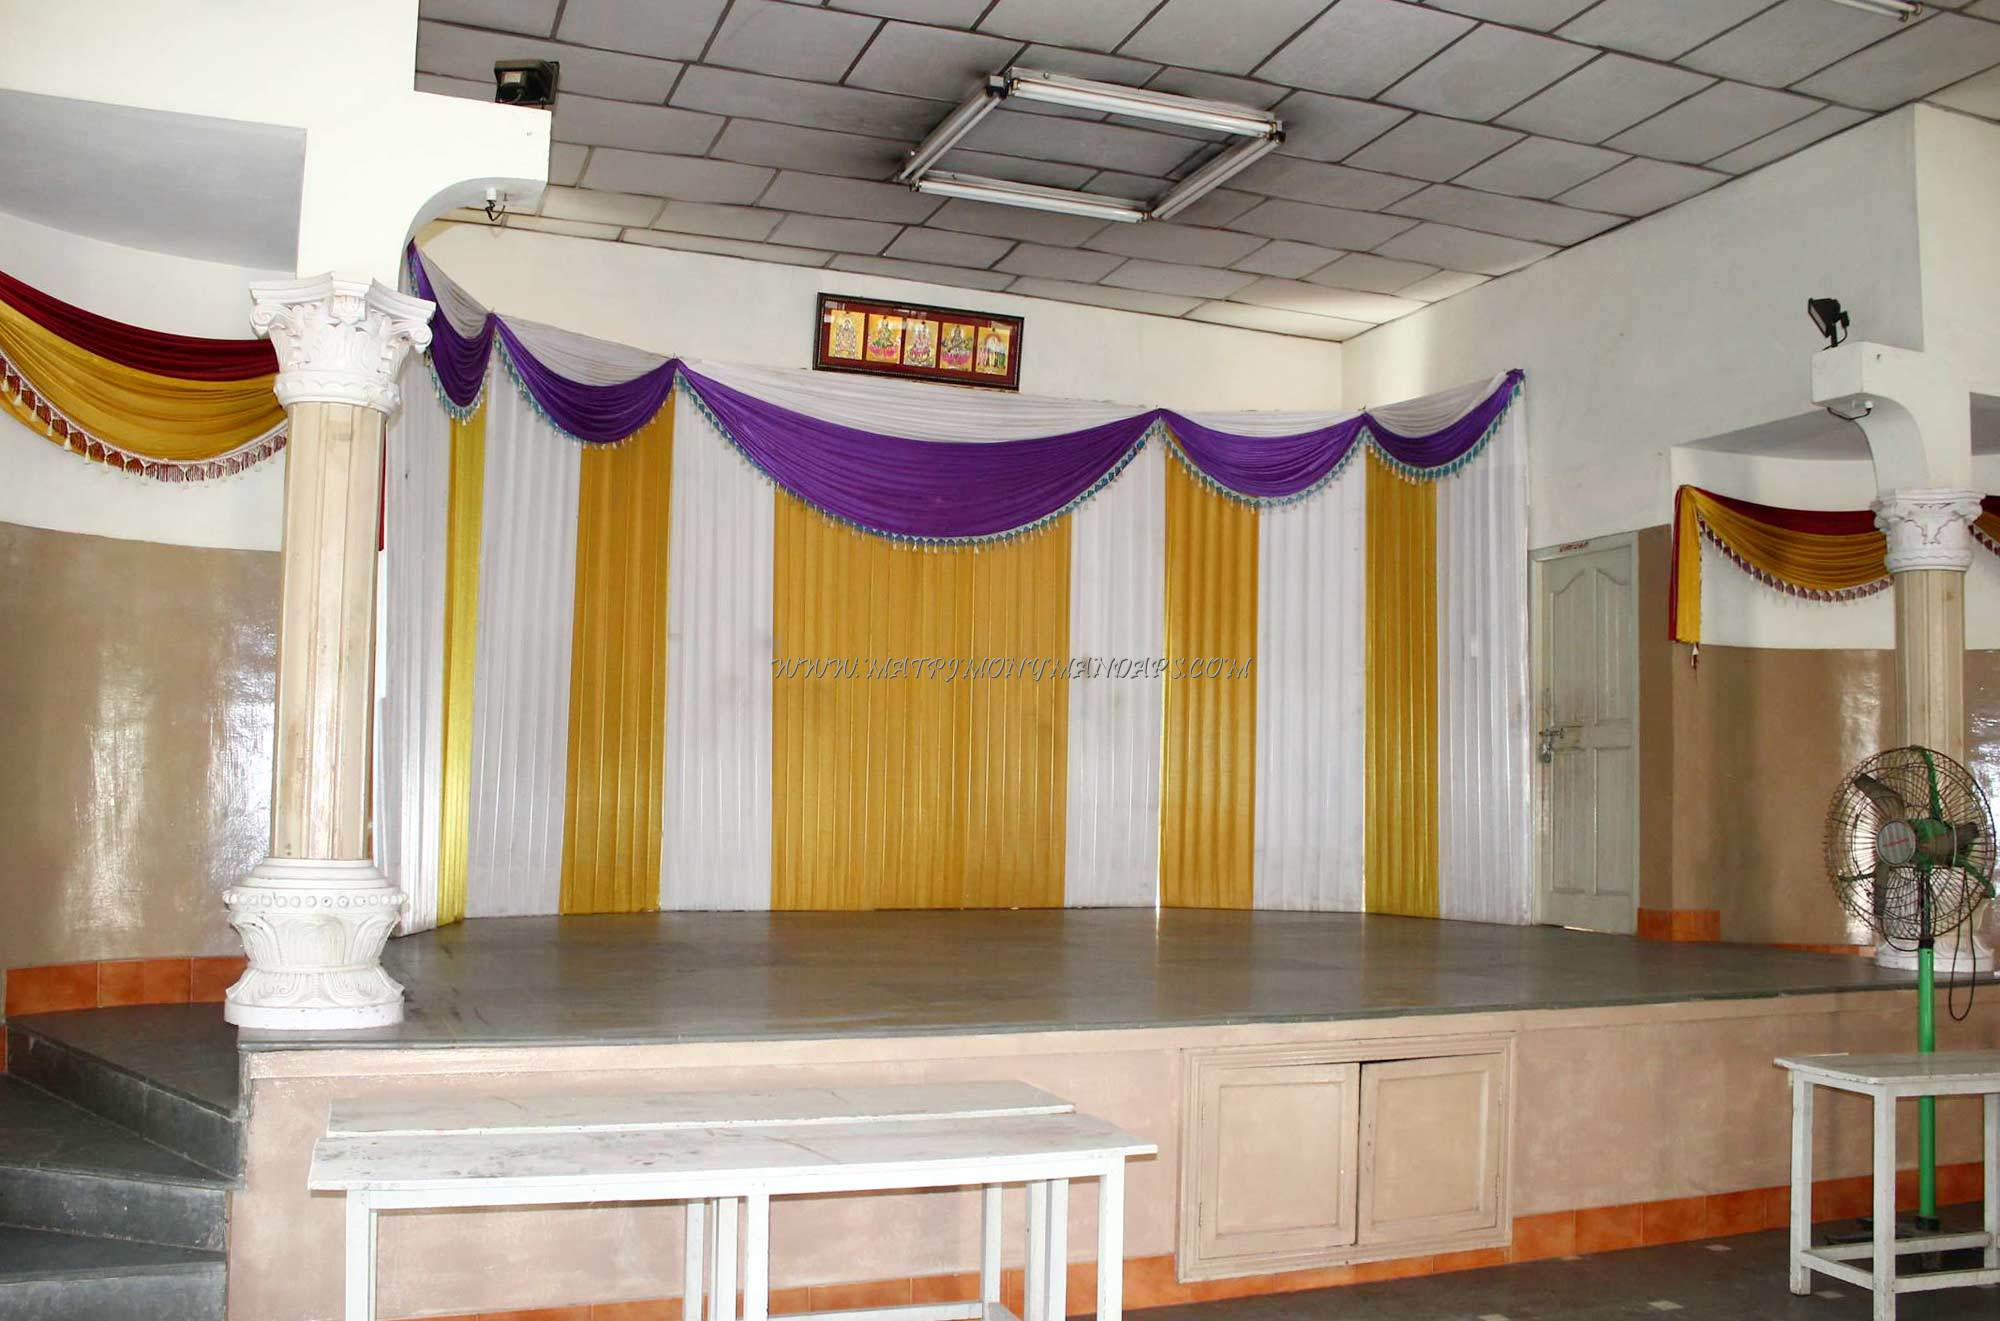 Find the availability of the Rajaveni Thirumana Mandapam in Jyothi Nagar, Chennai and avail special offers